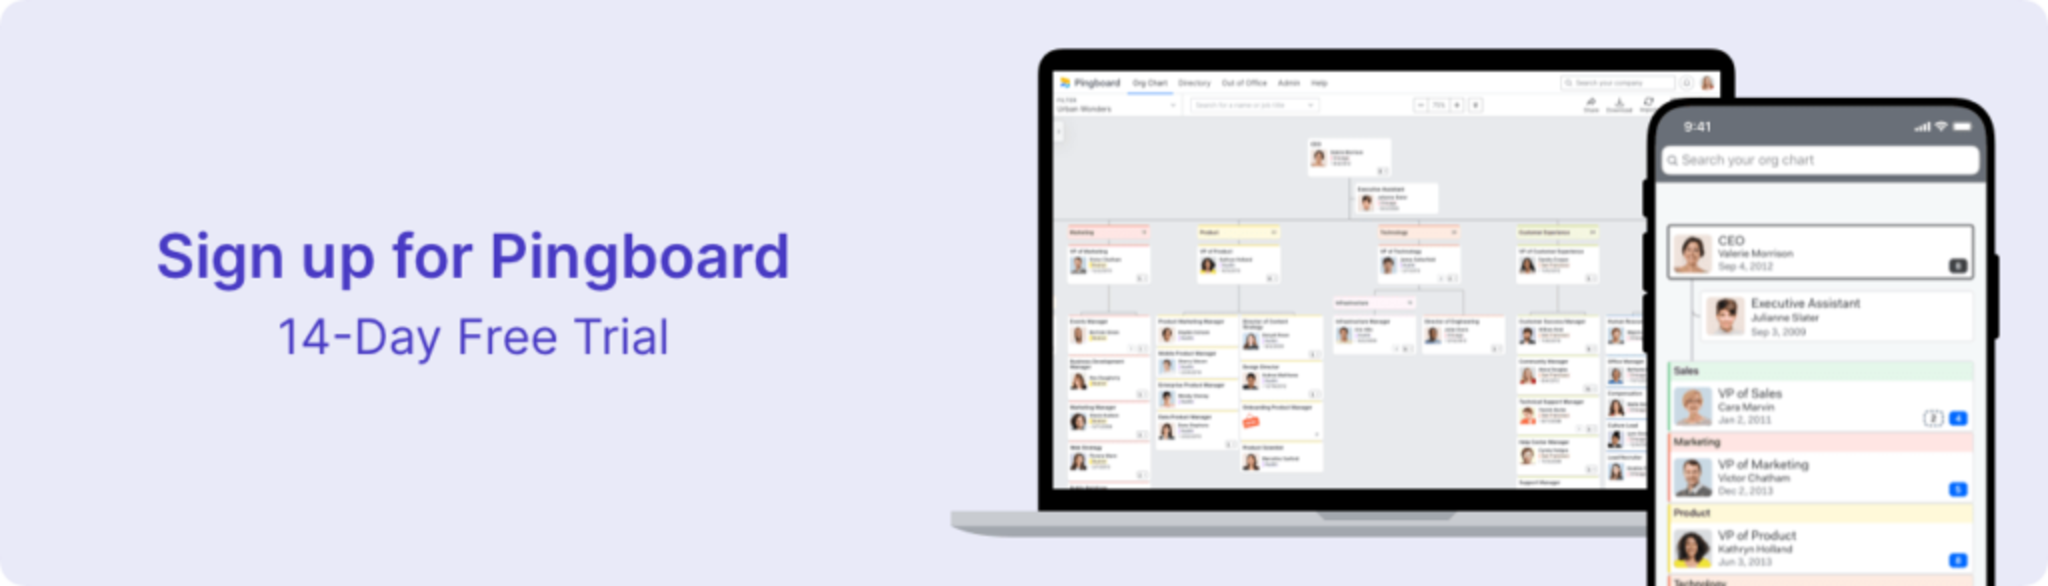 Sign up for Pingboard 14-day free trial